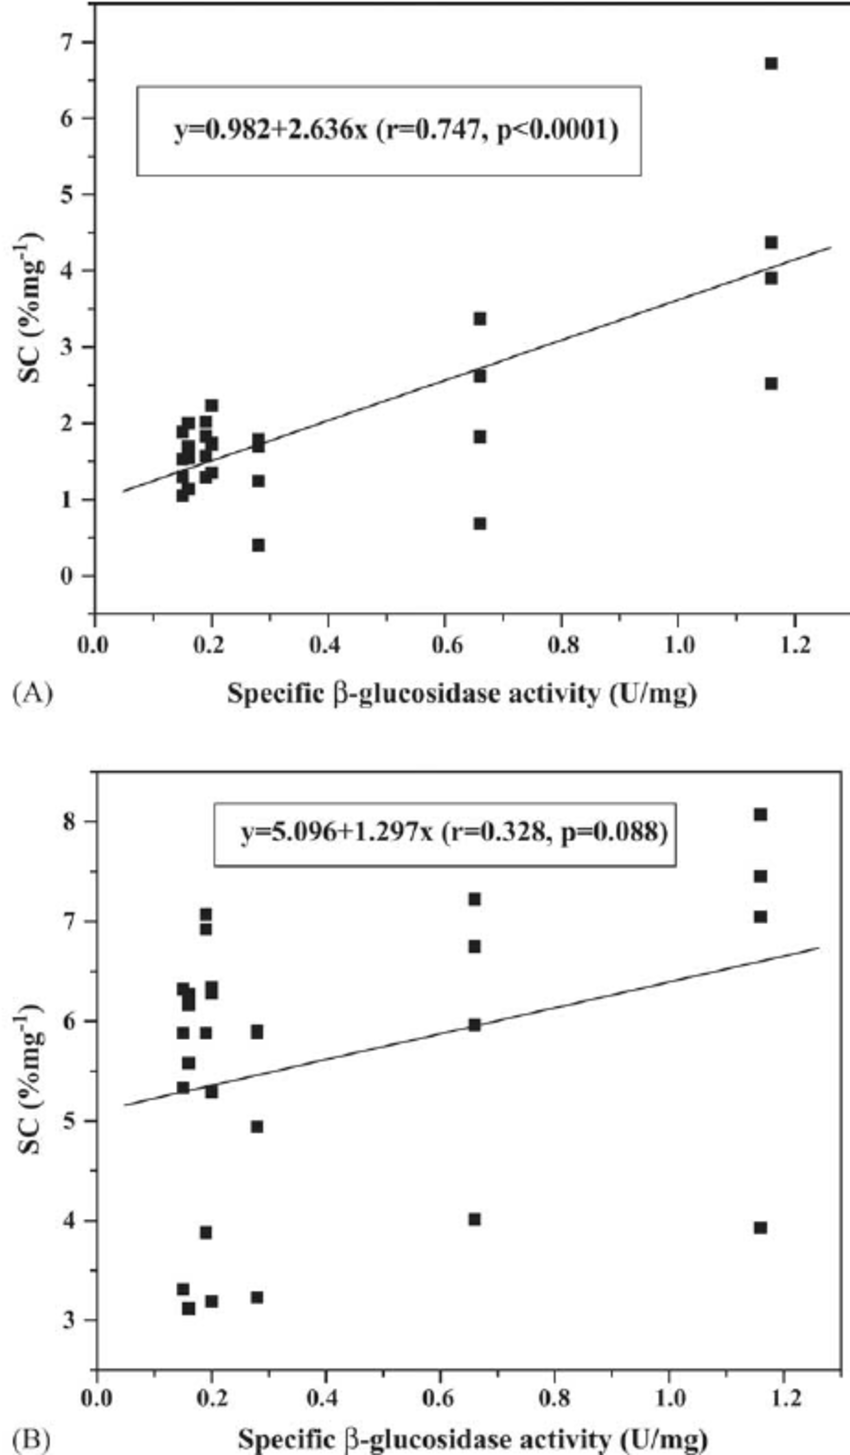 medium resolution of regression analyses of sc for hydrolysis of softwood samples vs specific glucosidase activity